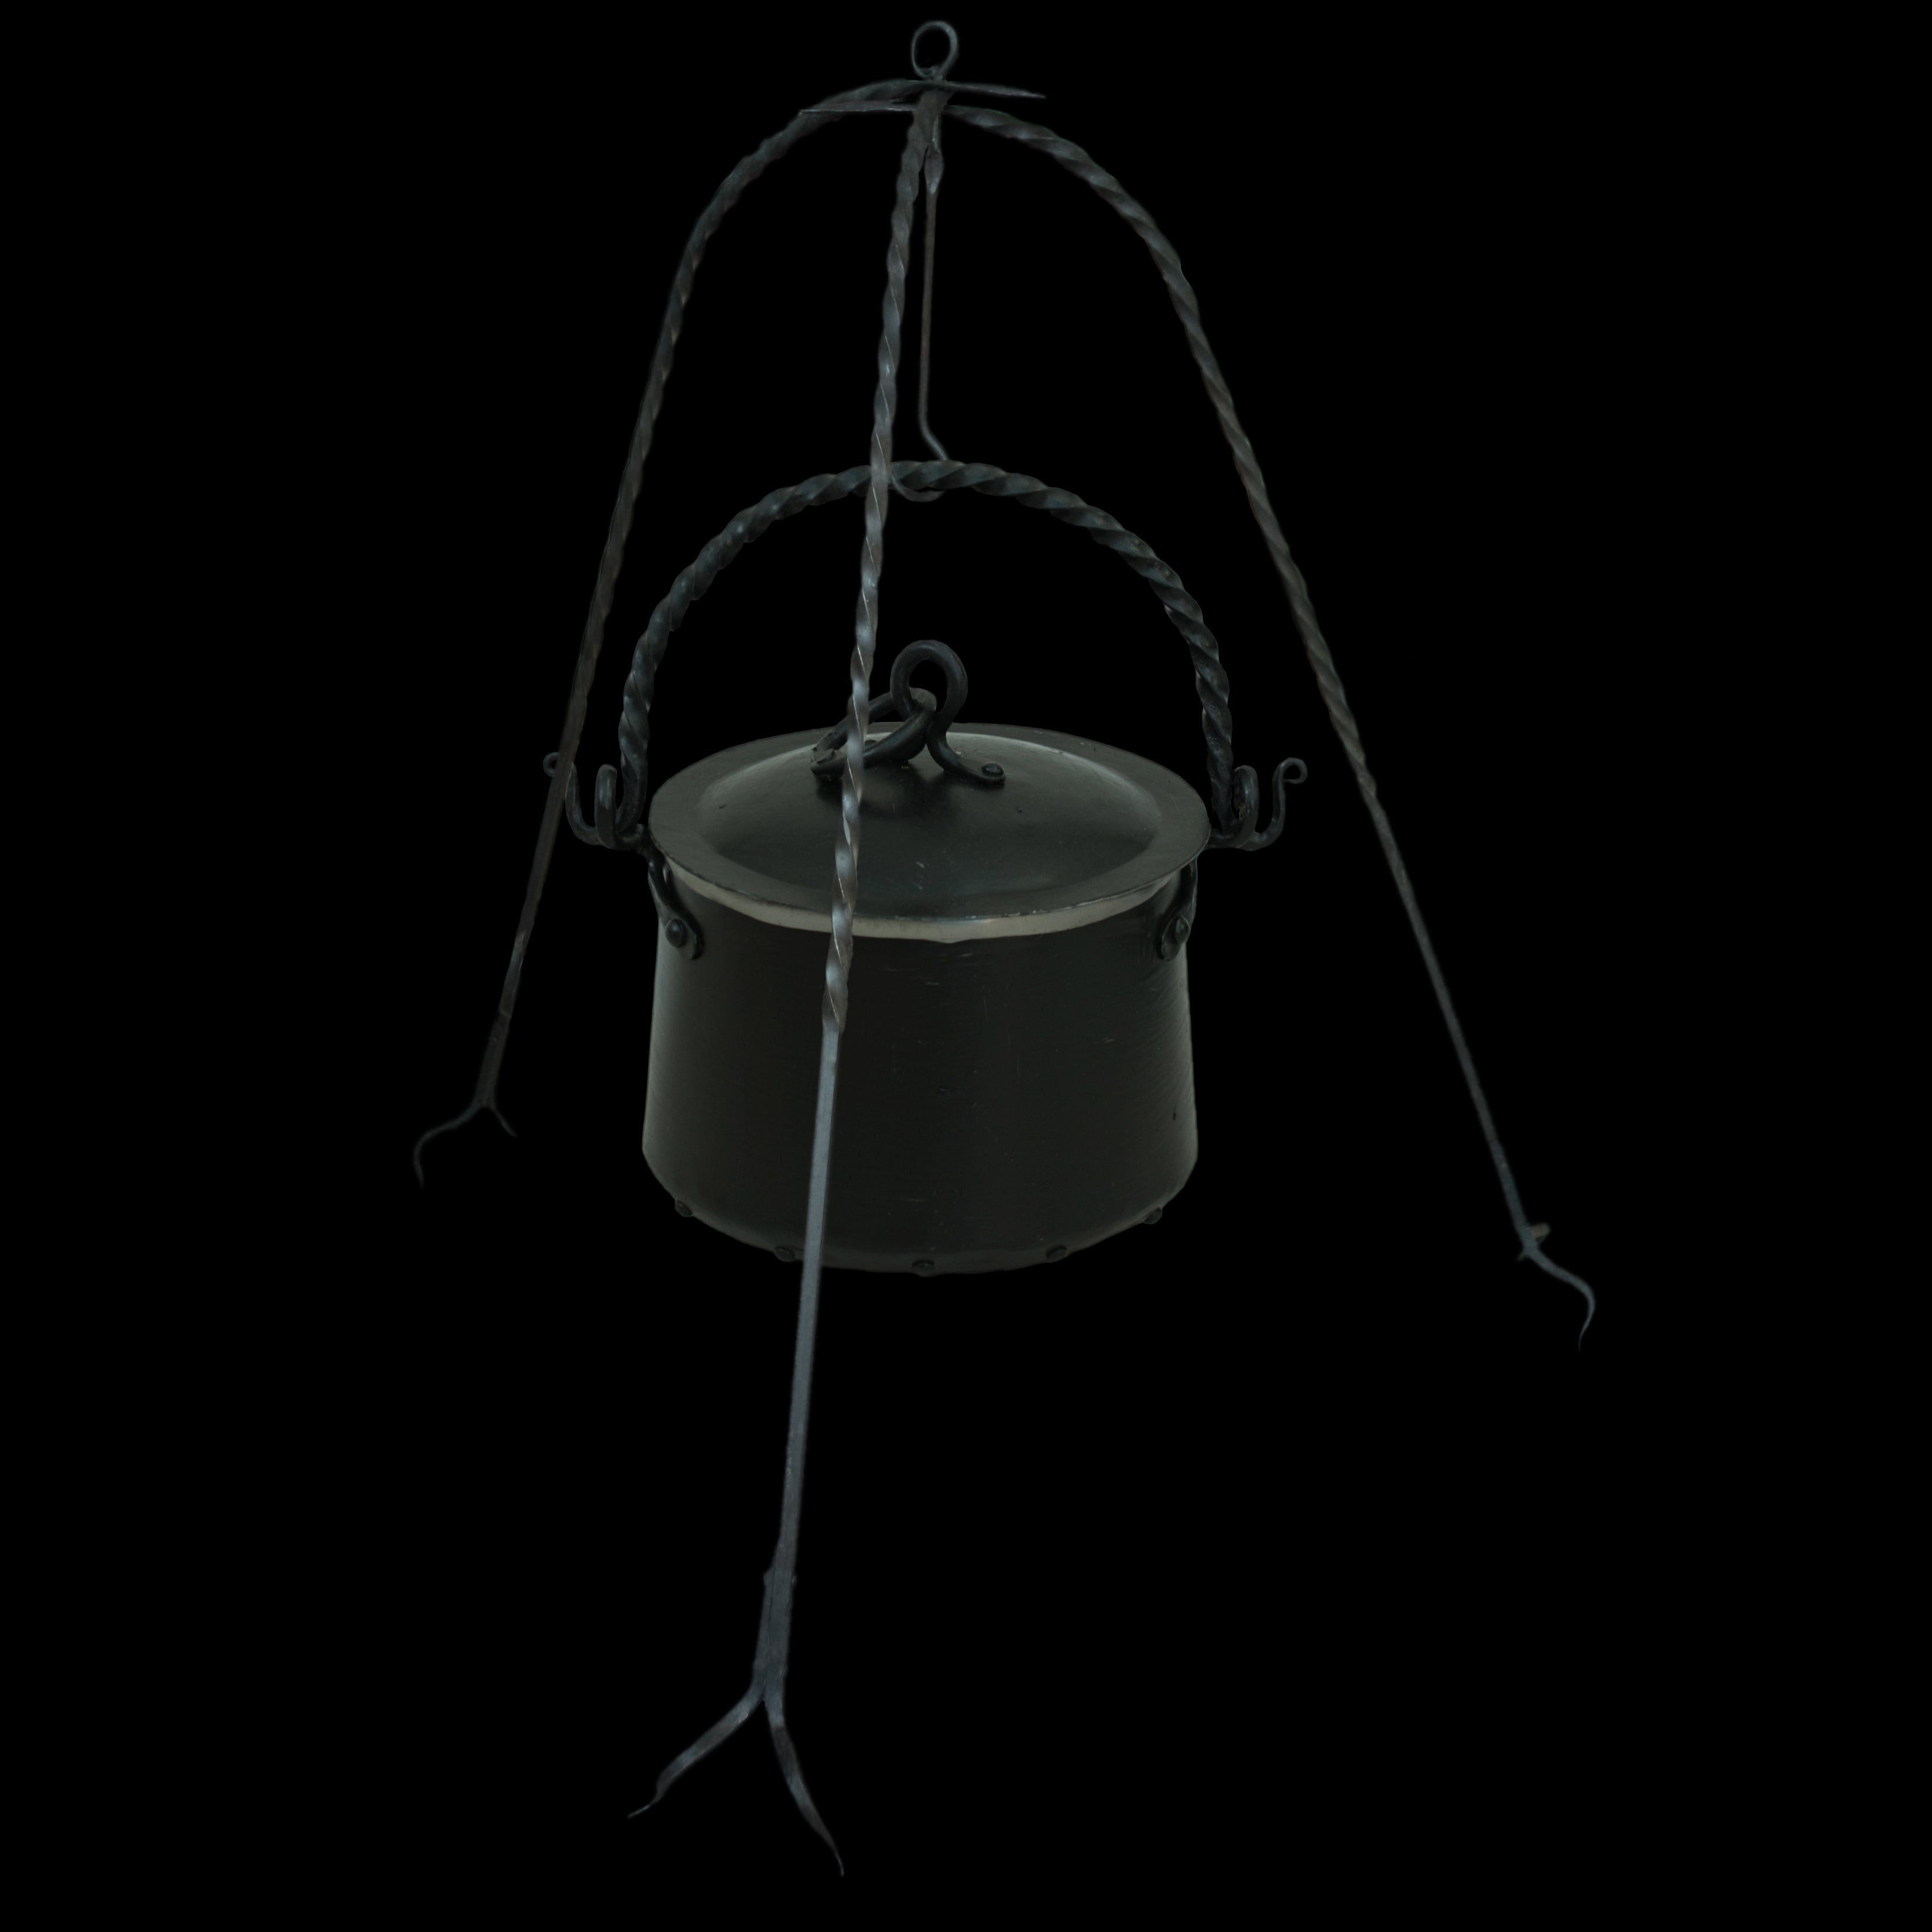 Hand-Forged Iron Tripod Cooking Stand